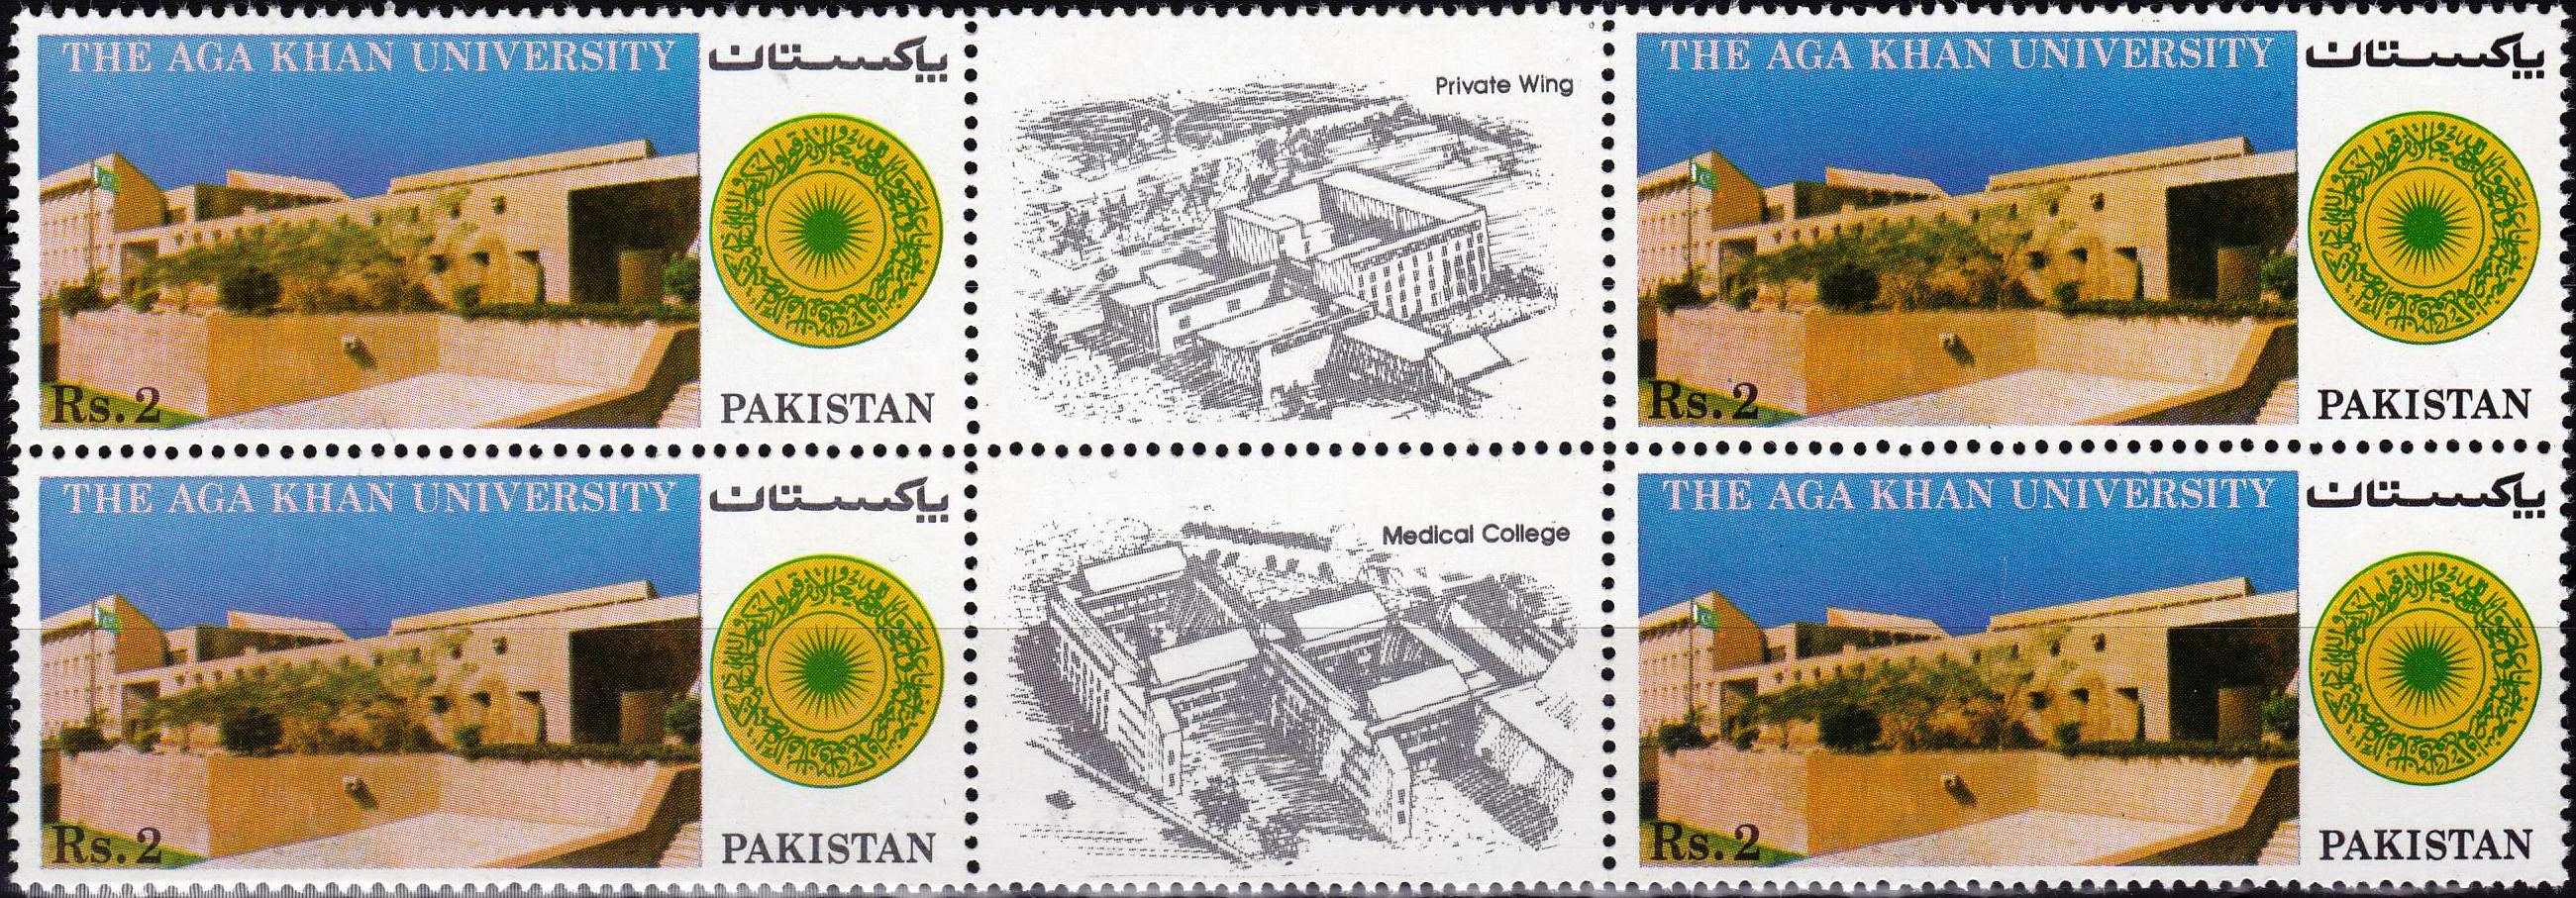 Pakistan Stamps 1983 Aga Khan University